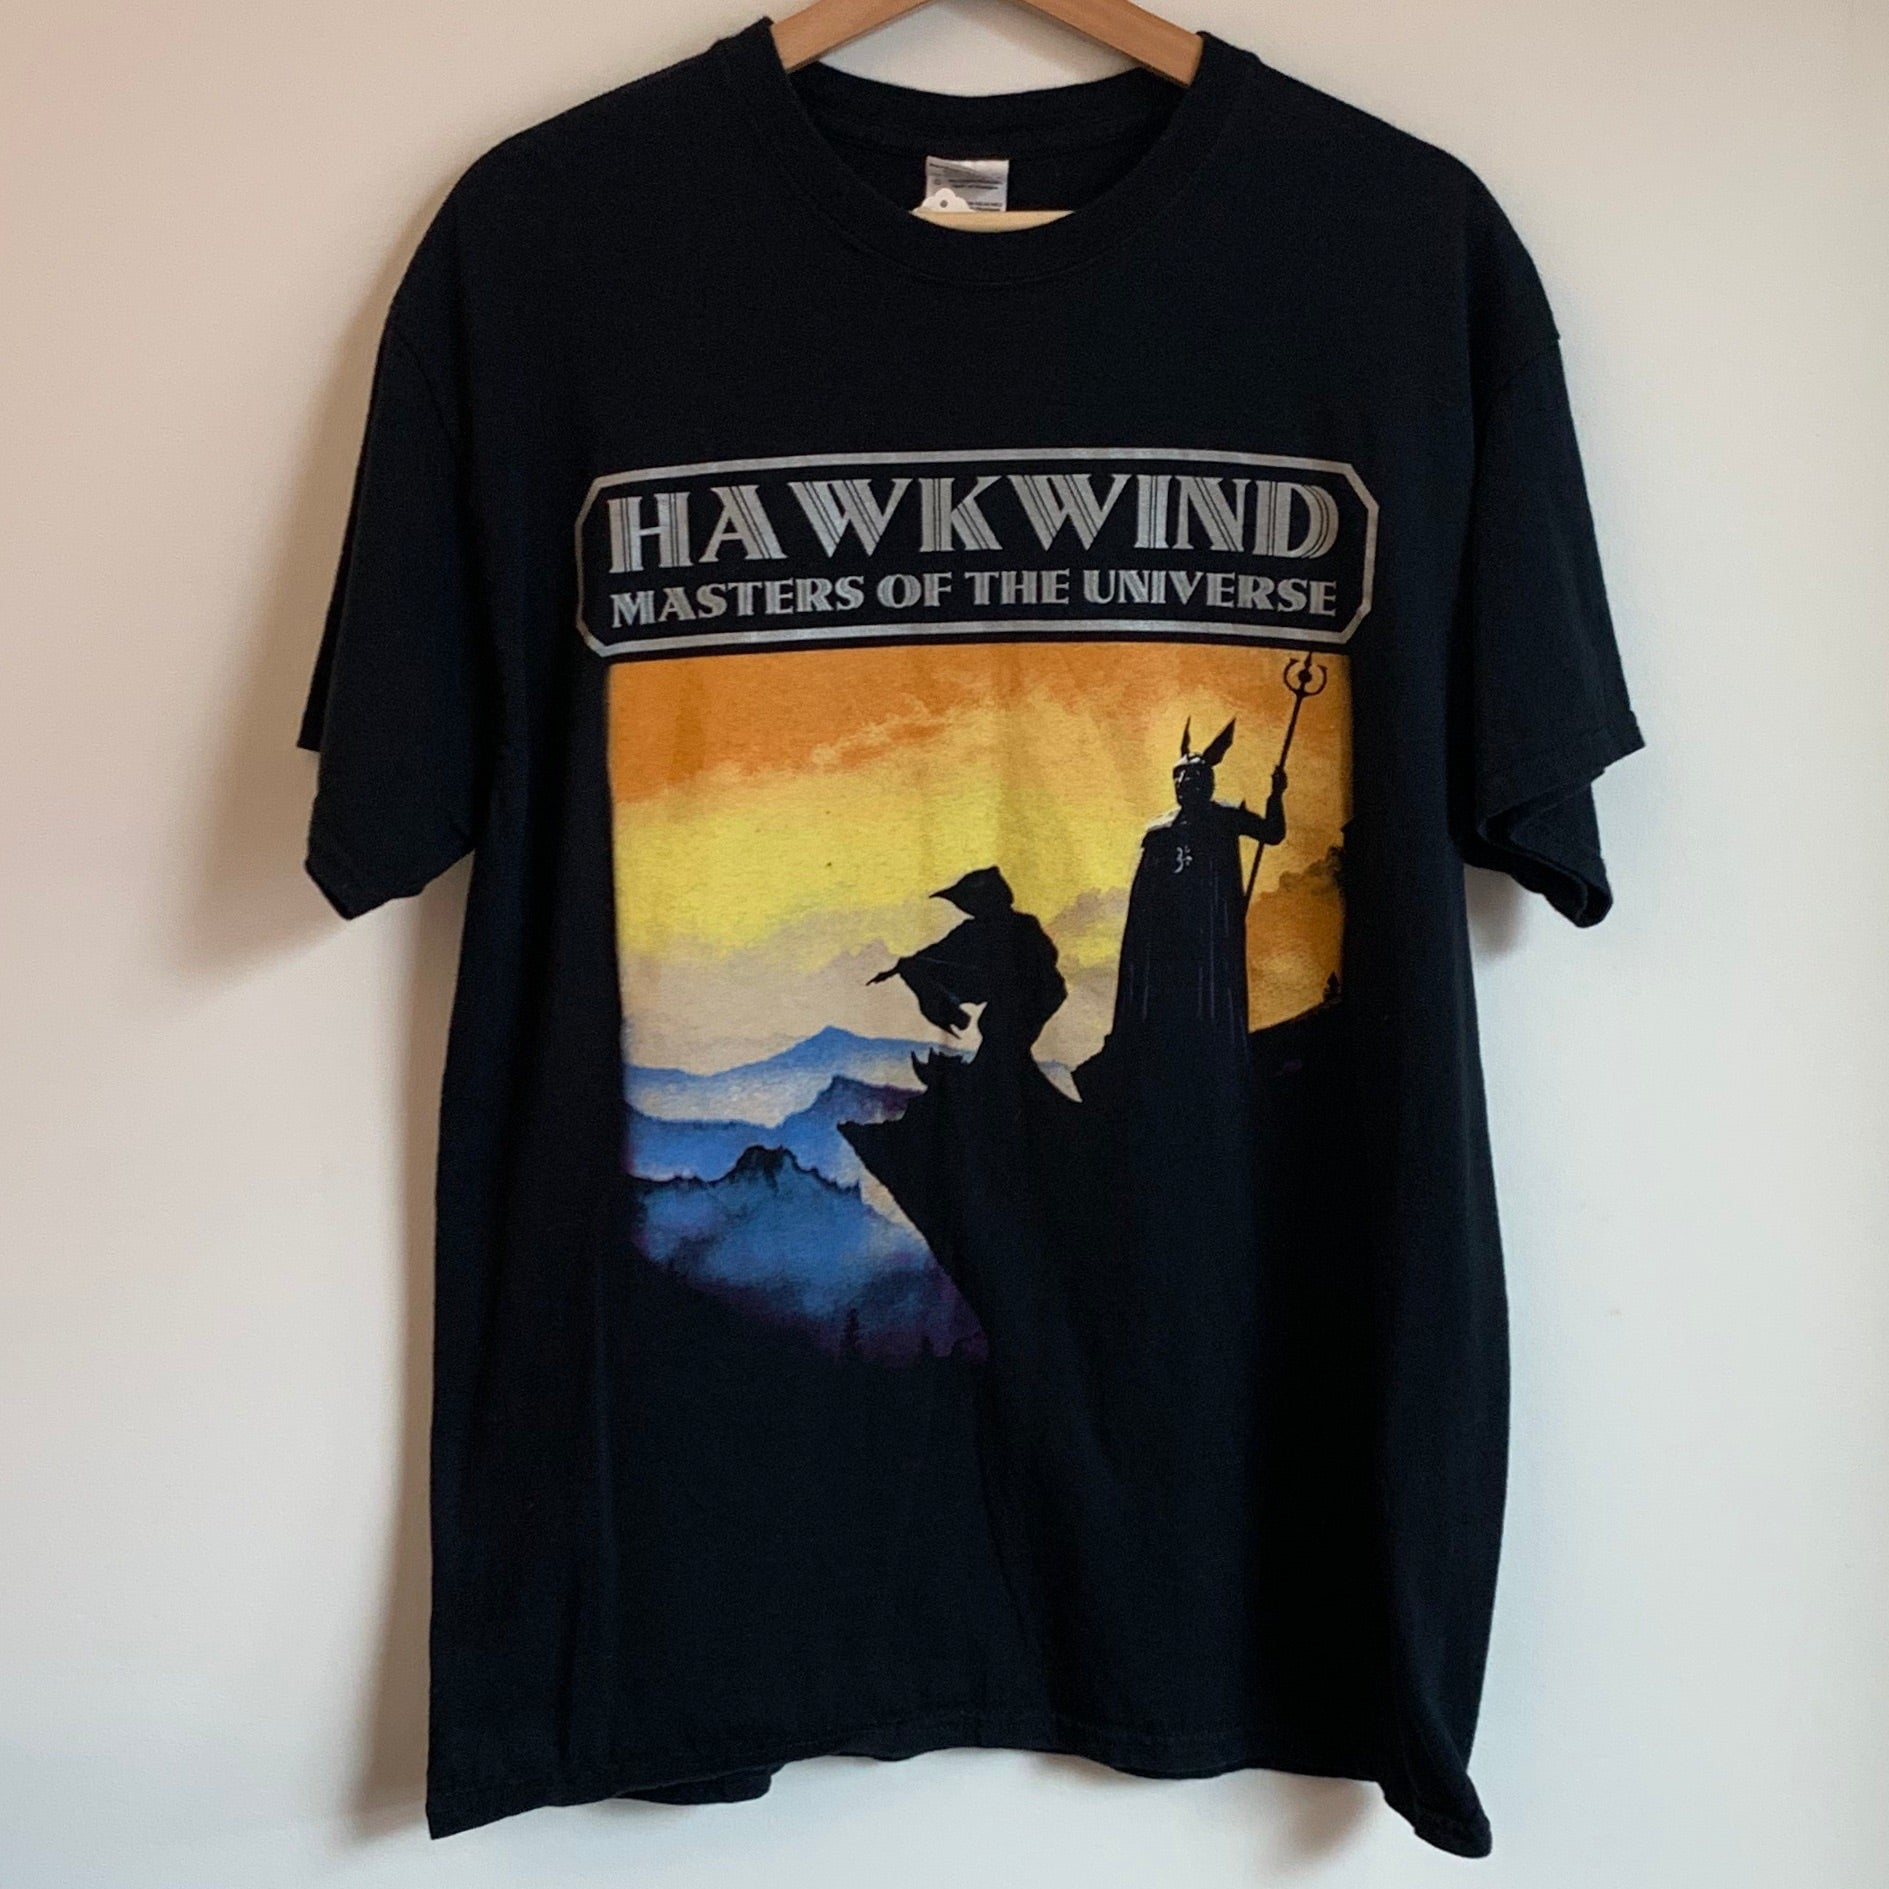 Hawkwind Masters Of The Universe Black Tee Shirt